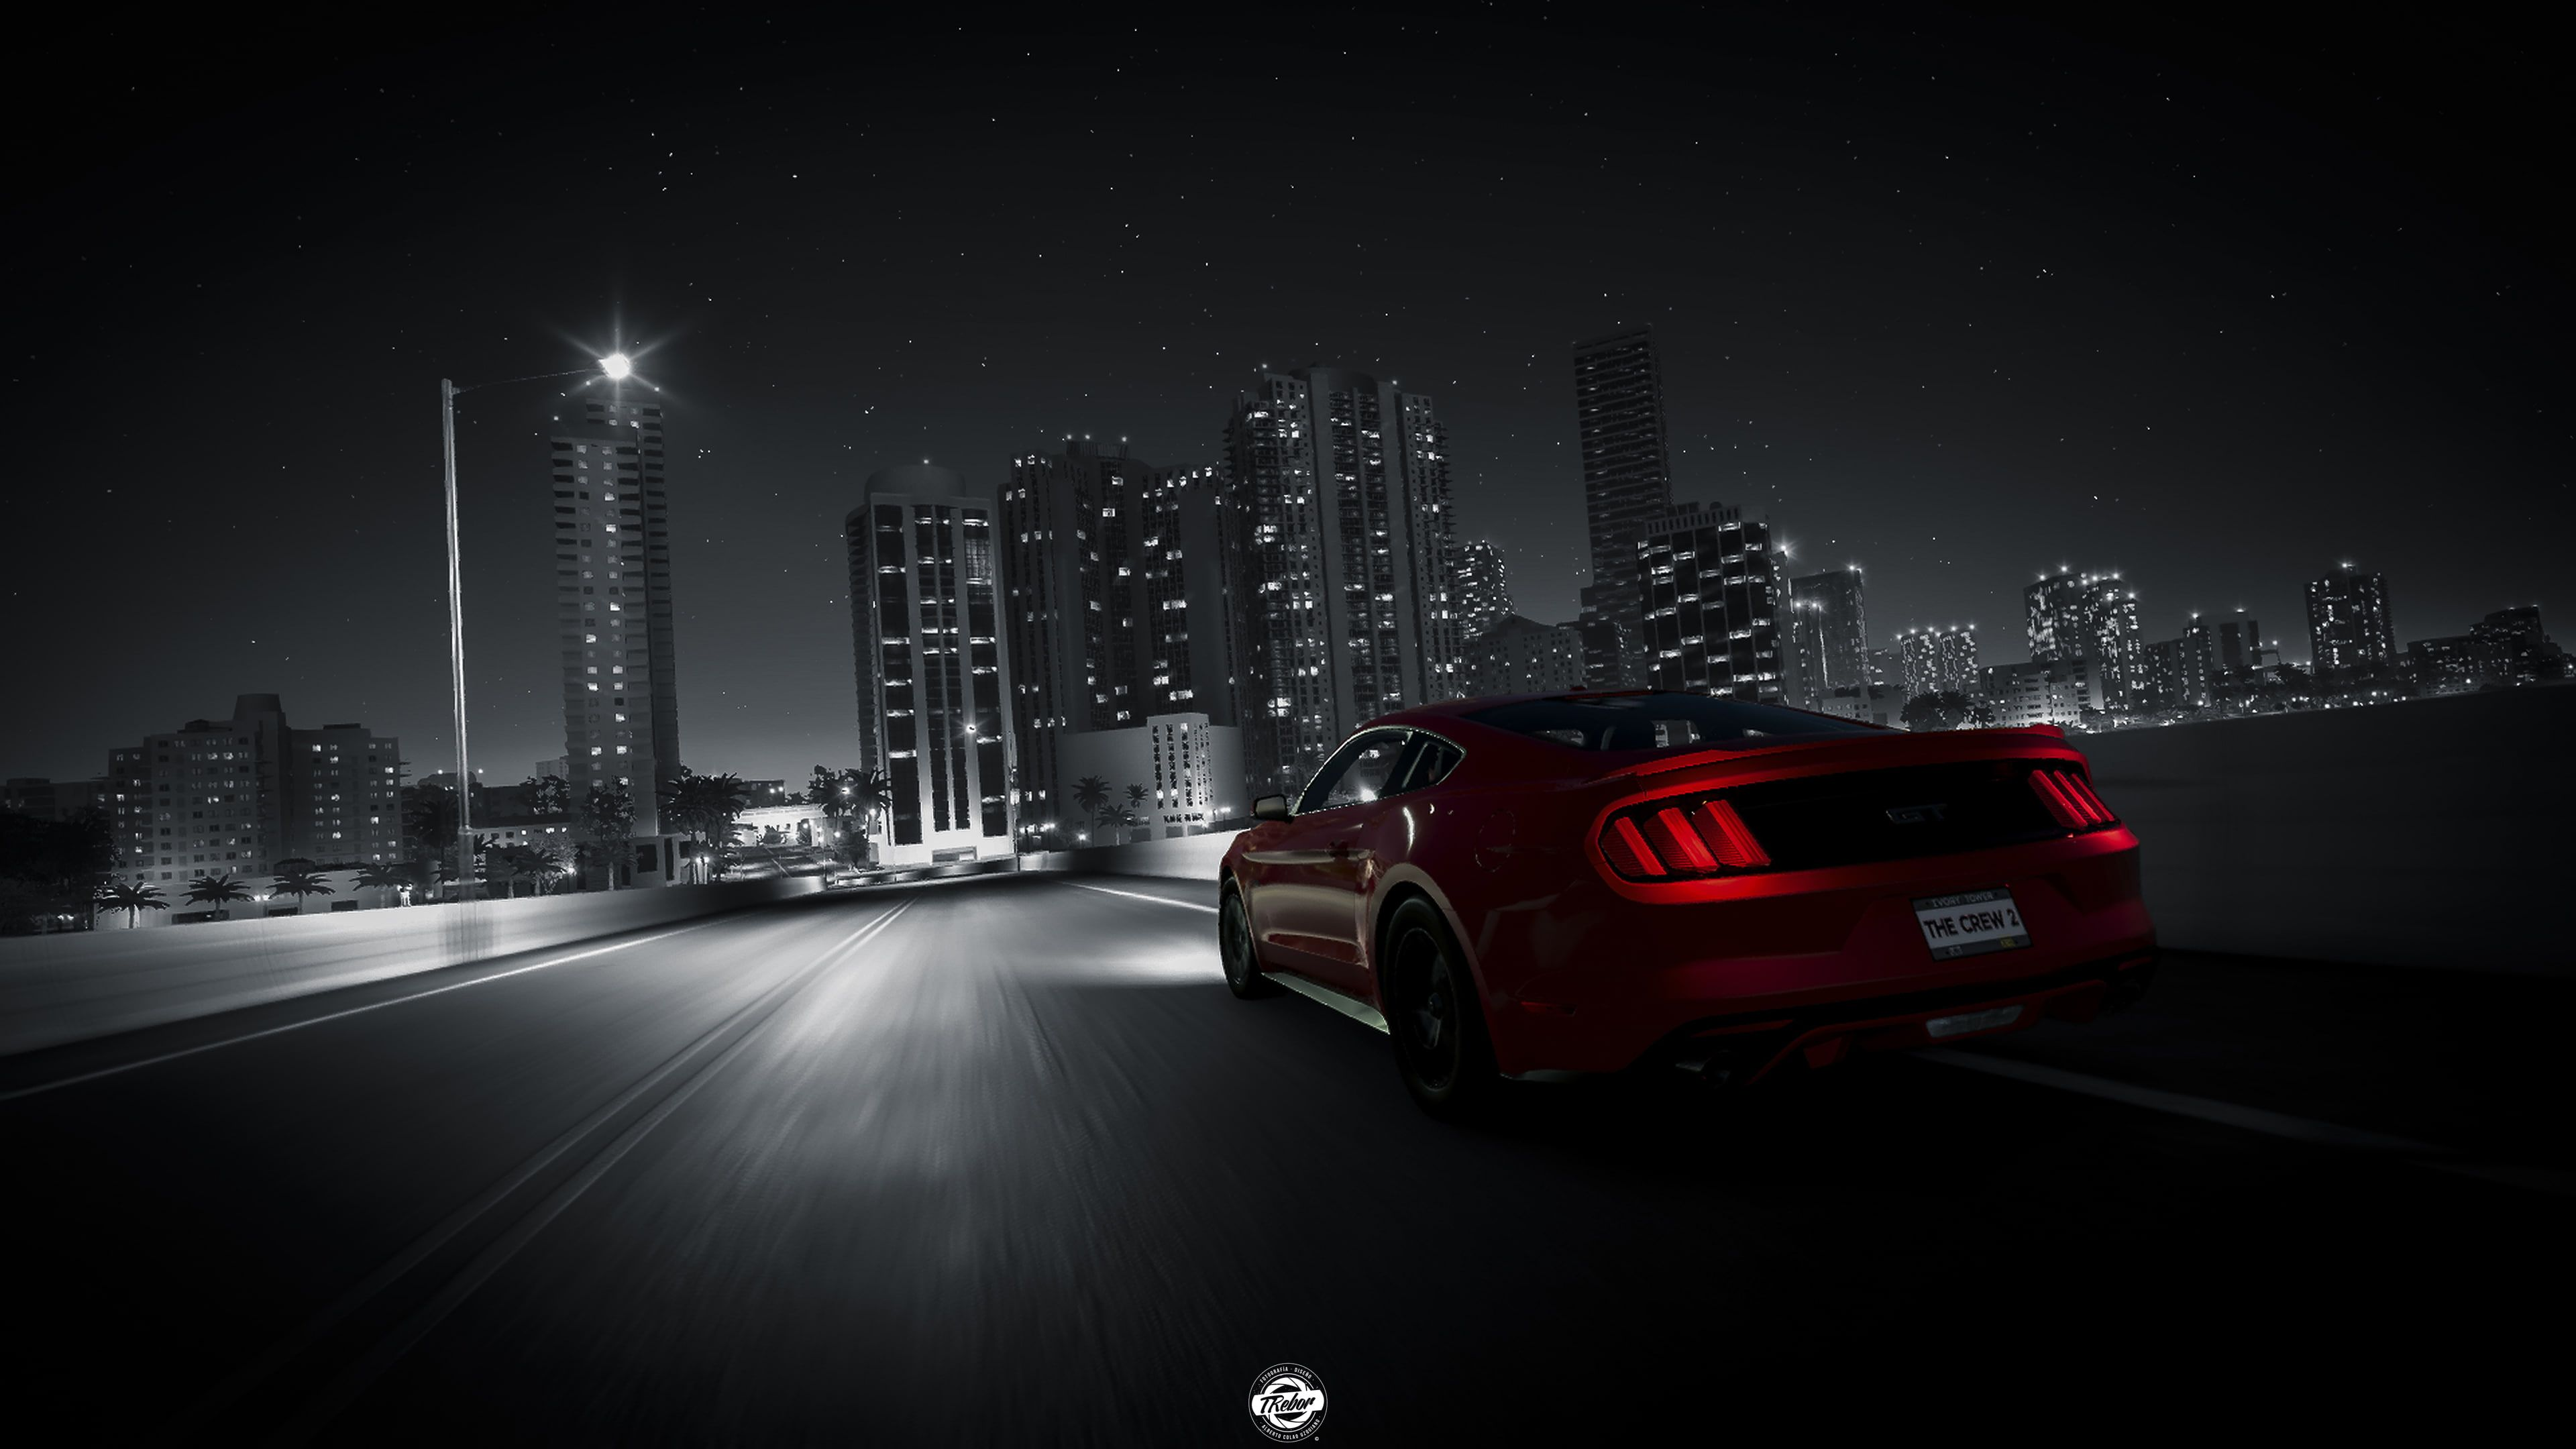 The Crew 2 The Crew Games Pc Games Xbox Games Ps Games 4k Hd Ford Mustang 4k Wallpaper Hdwallpaper Desk Ford Mustang Wallpaper Mustang Wallpaper Mustang